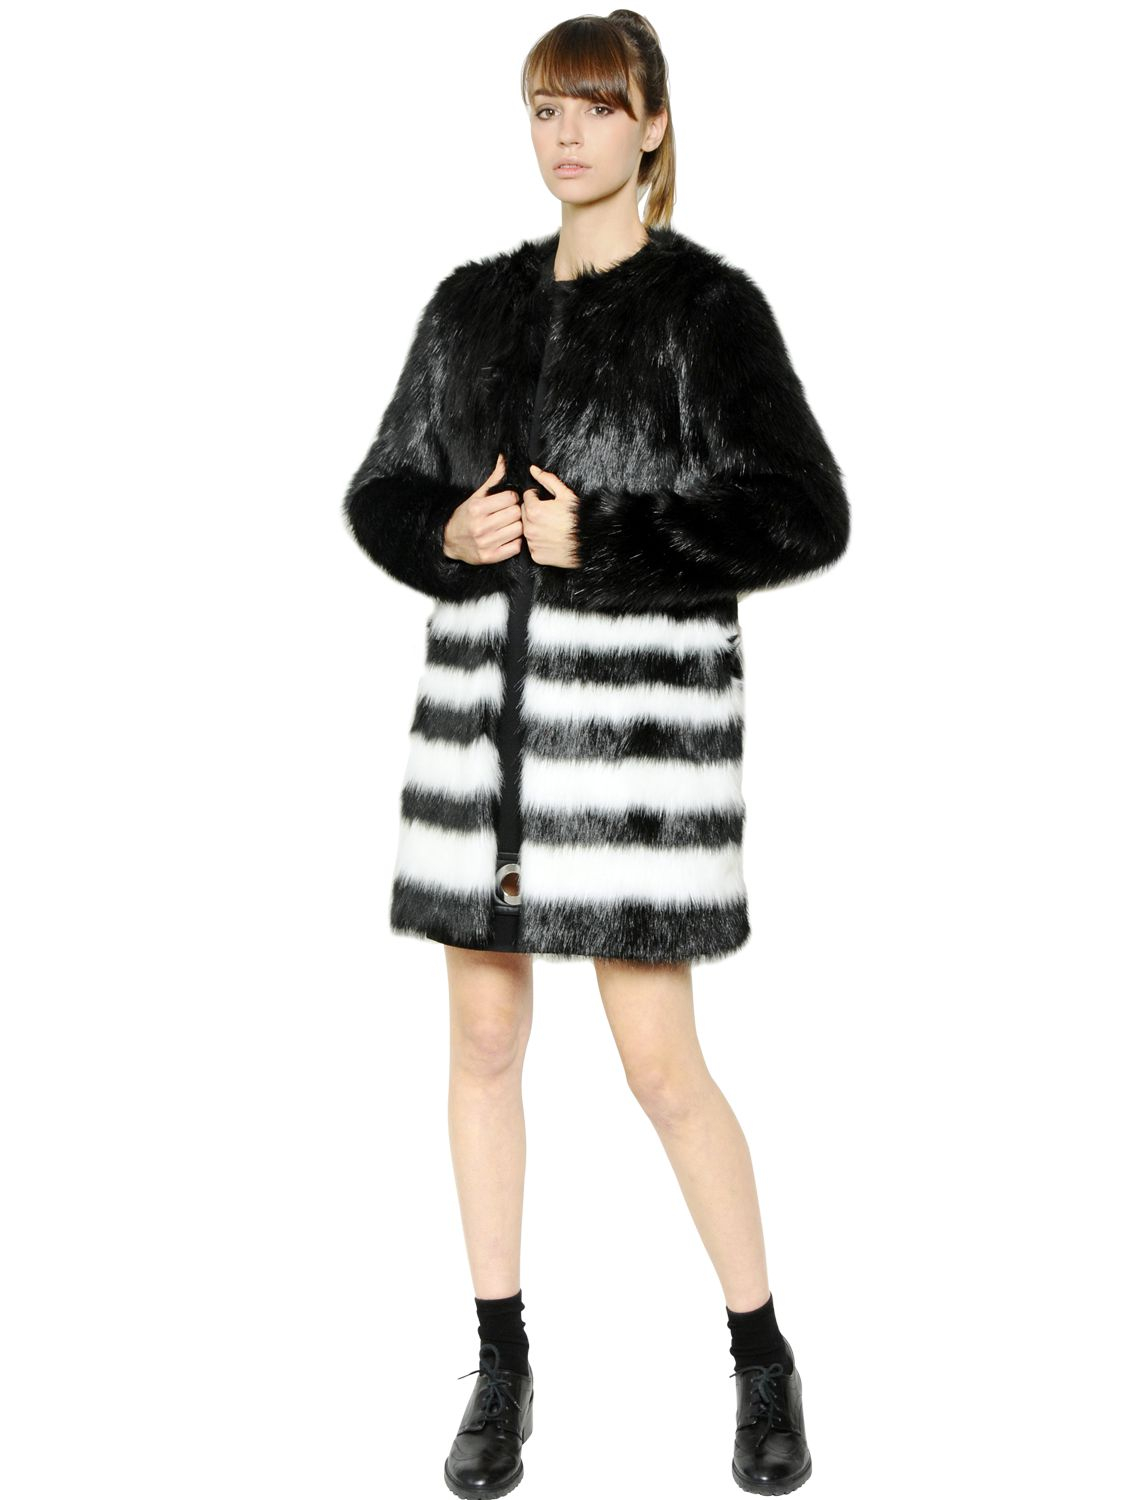 7b52c84a99 MICHAEL Michael Kors Striped Faux Fur Coat in Black - Lyst